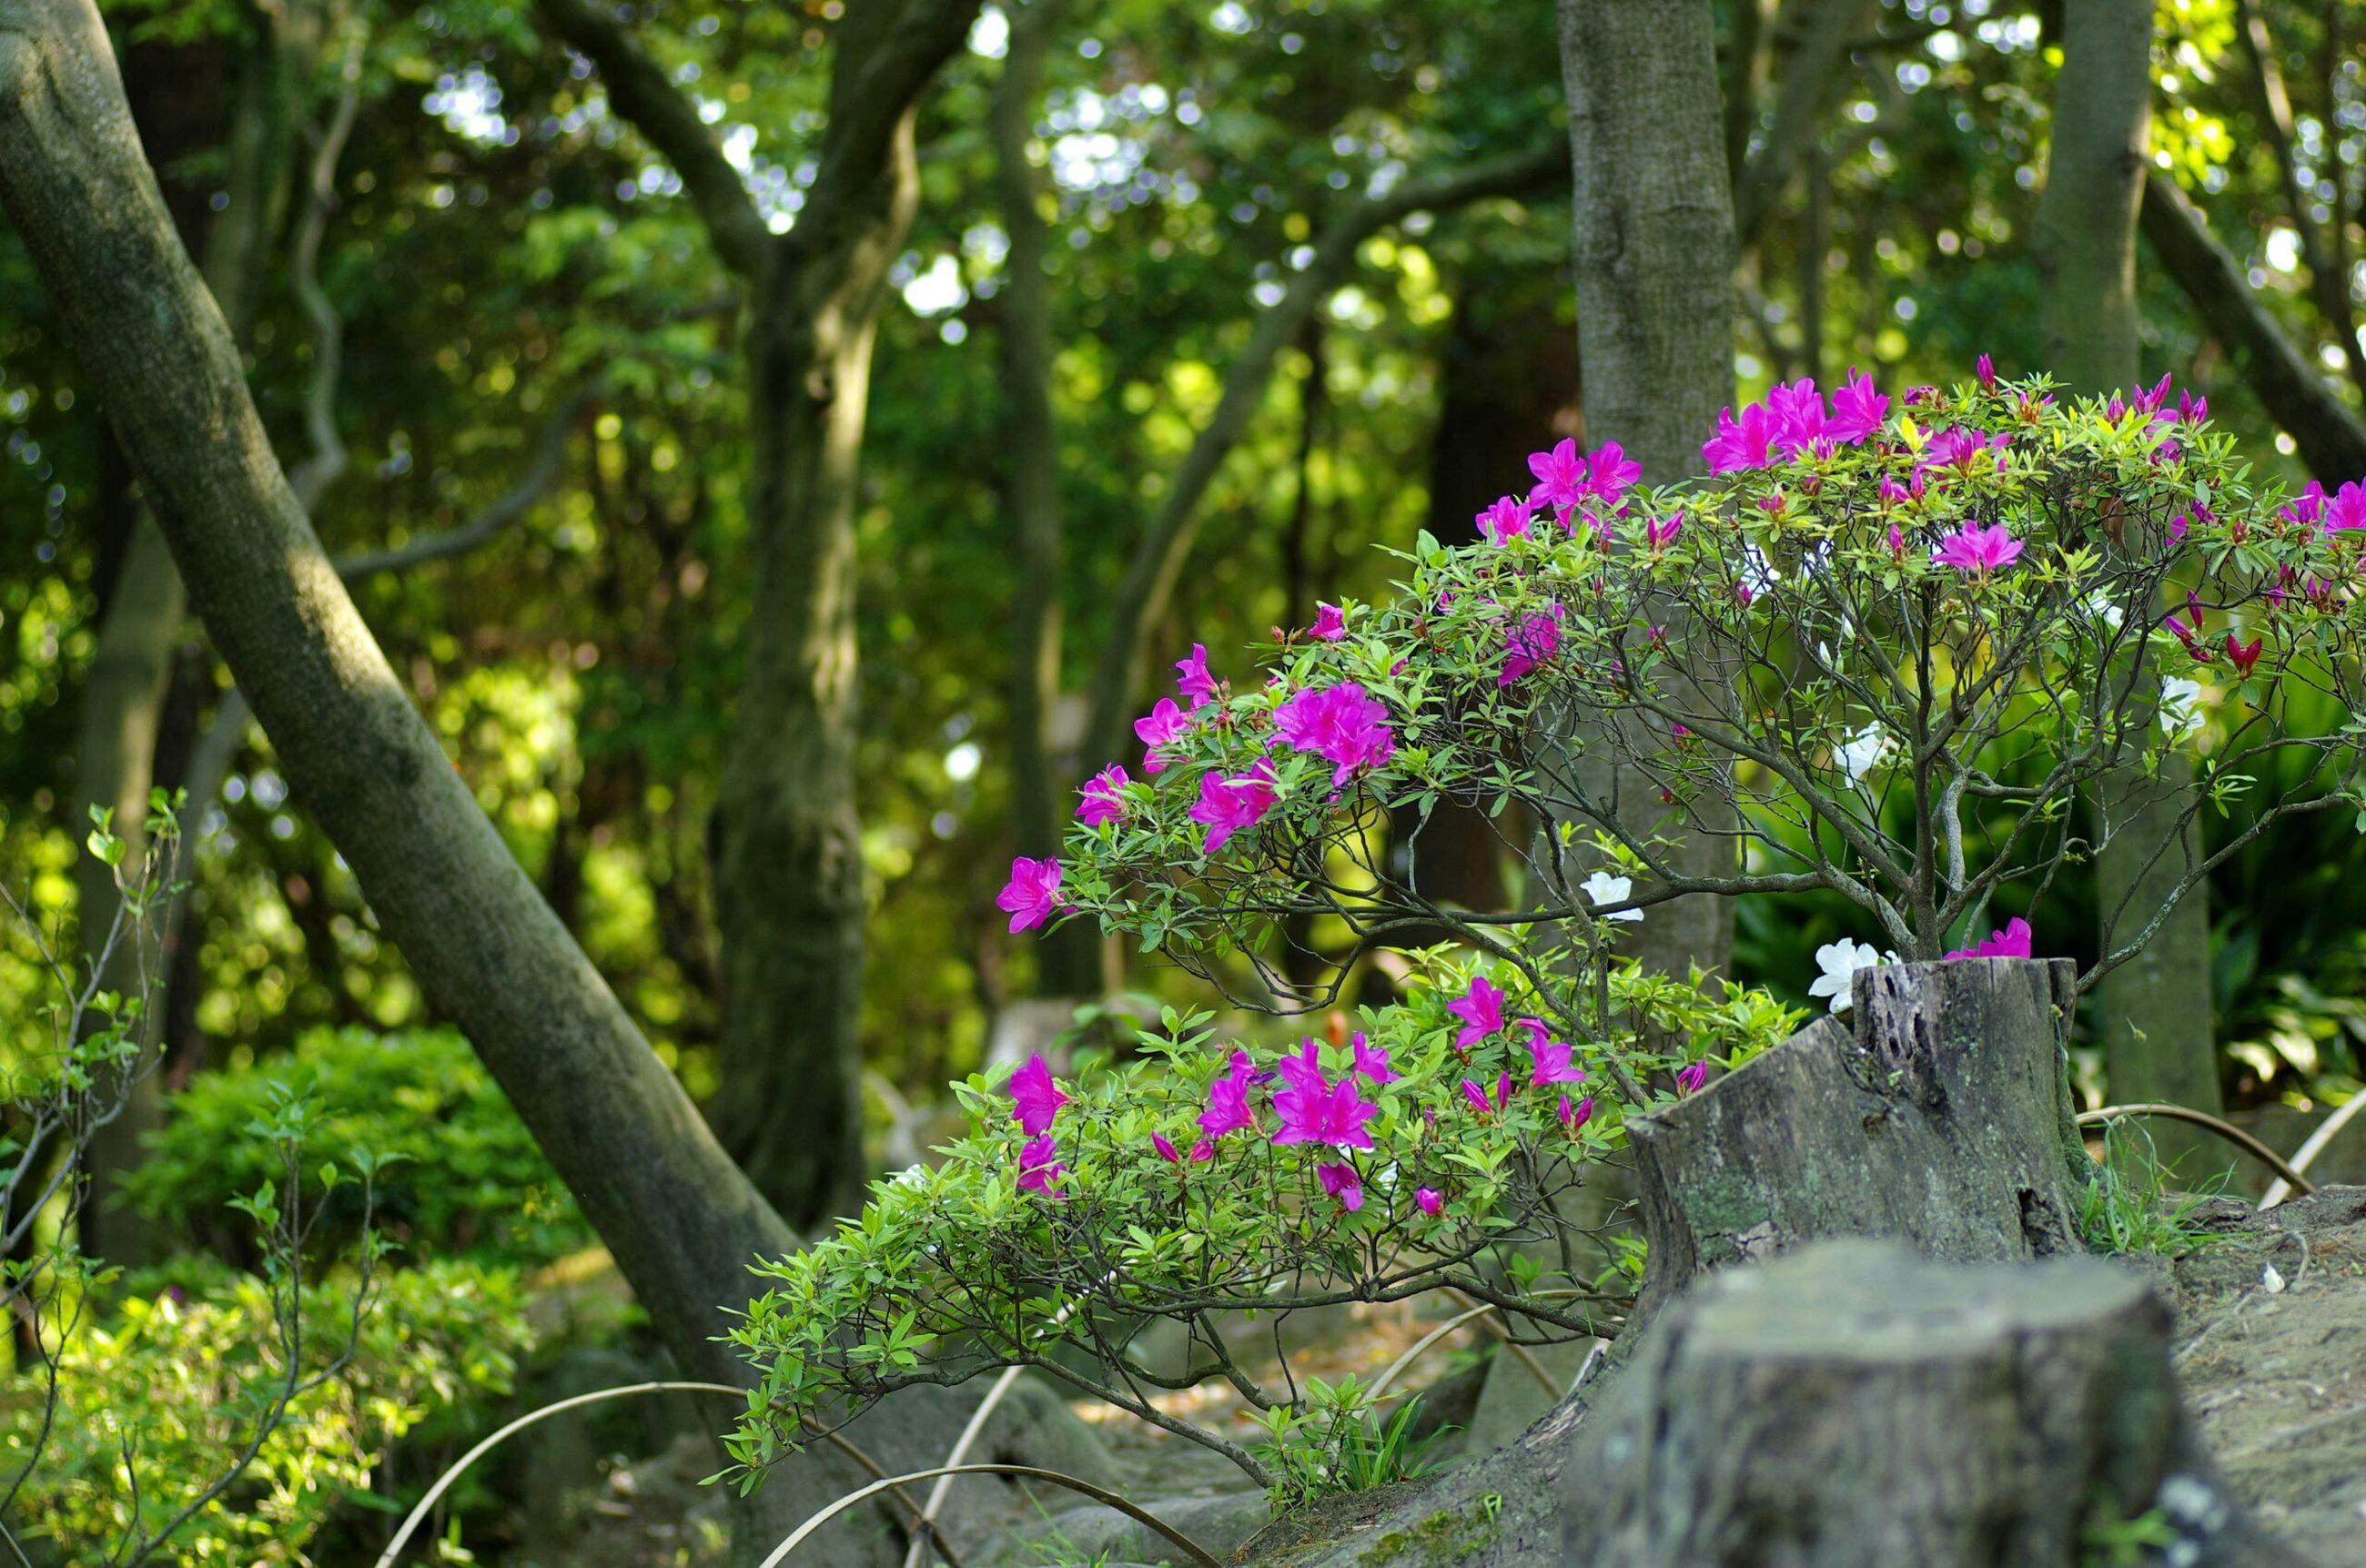 flower, growth, freshness, beauty in nature, fragility, nature, plant, tree, pink color, purple, petal, park - man made space, blooming, tree trunk, in bloom, fence, blossom, focus on foreground, tranquility, green color